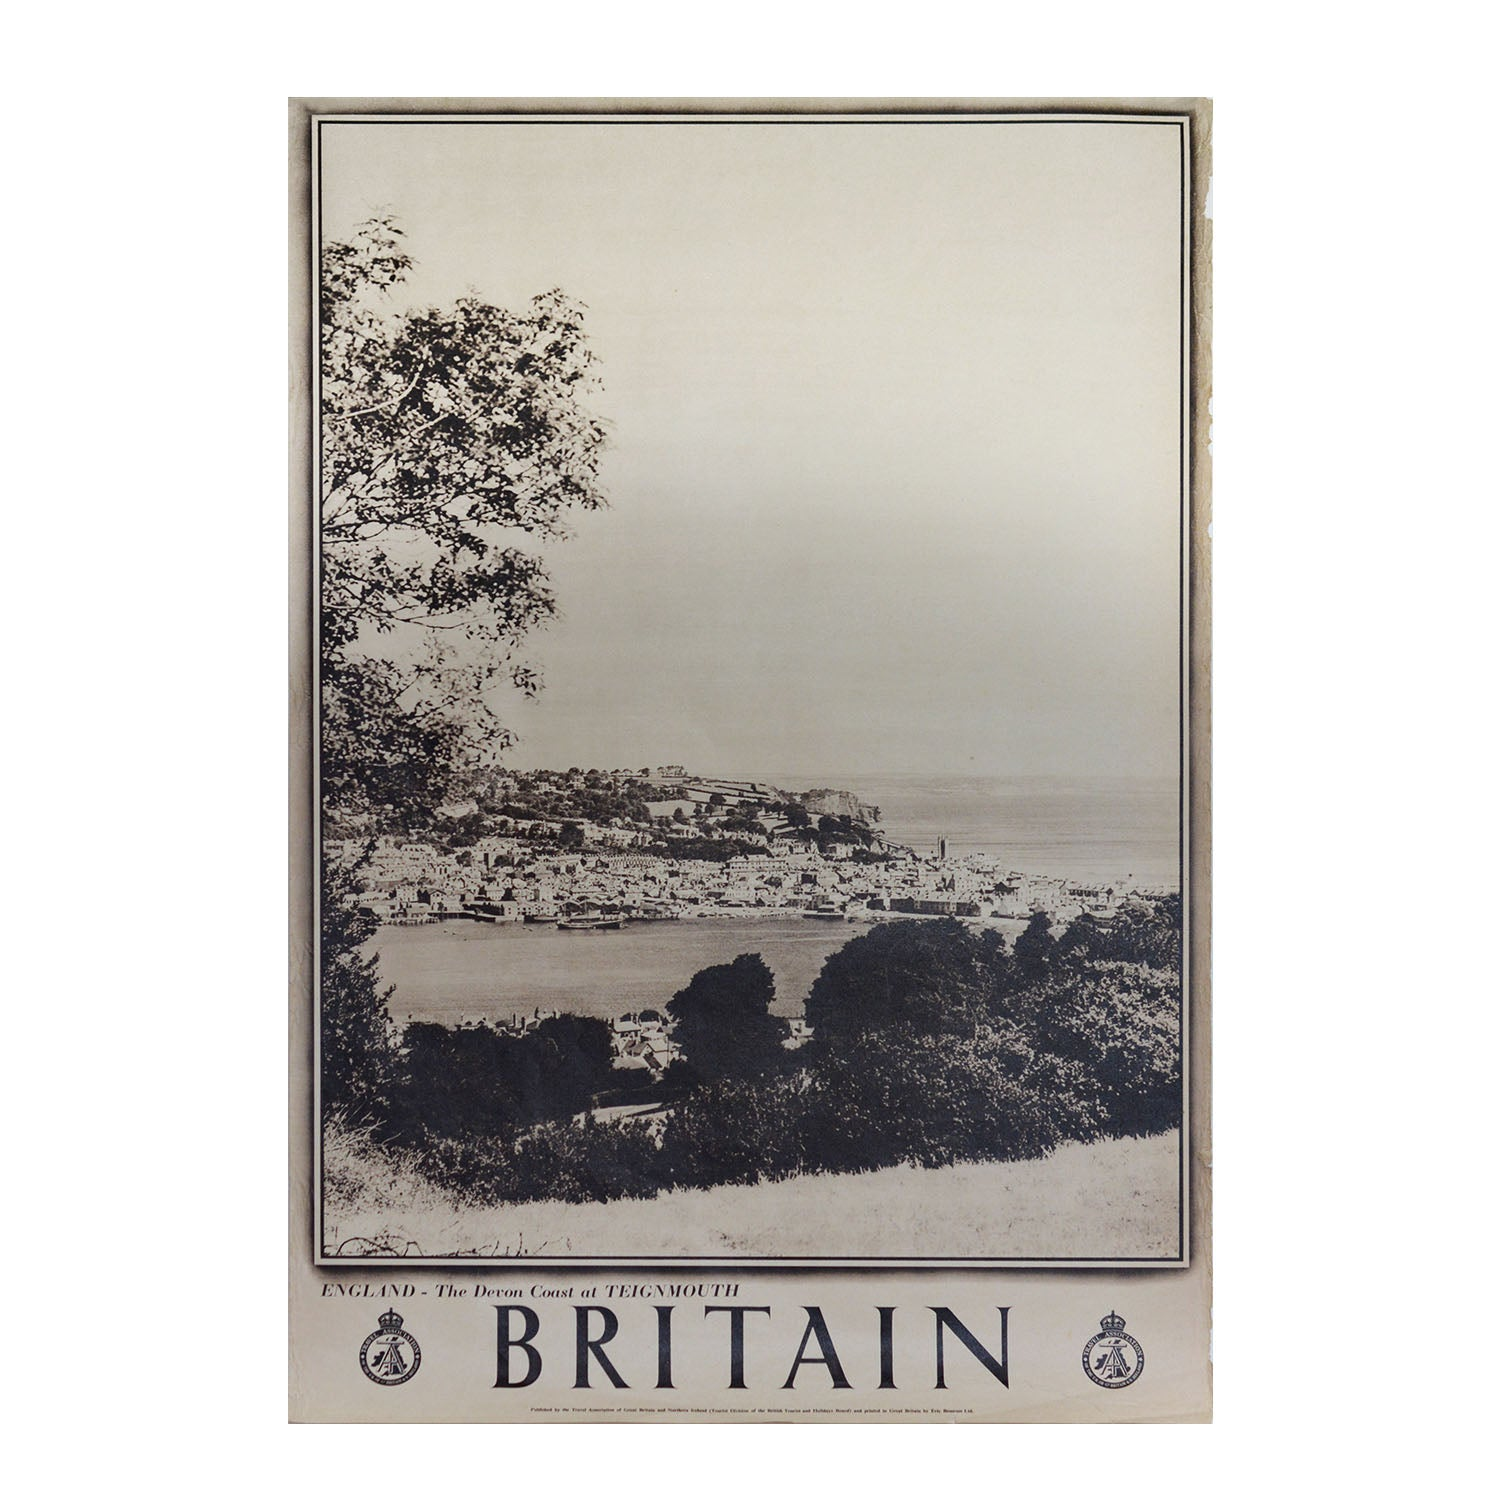 A lovely photographic poster showing Teignmouth, Devon, published by the British Travel Association